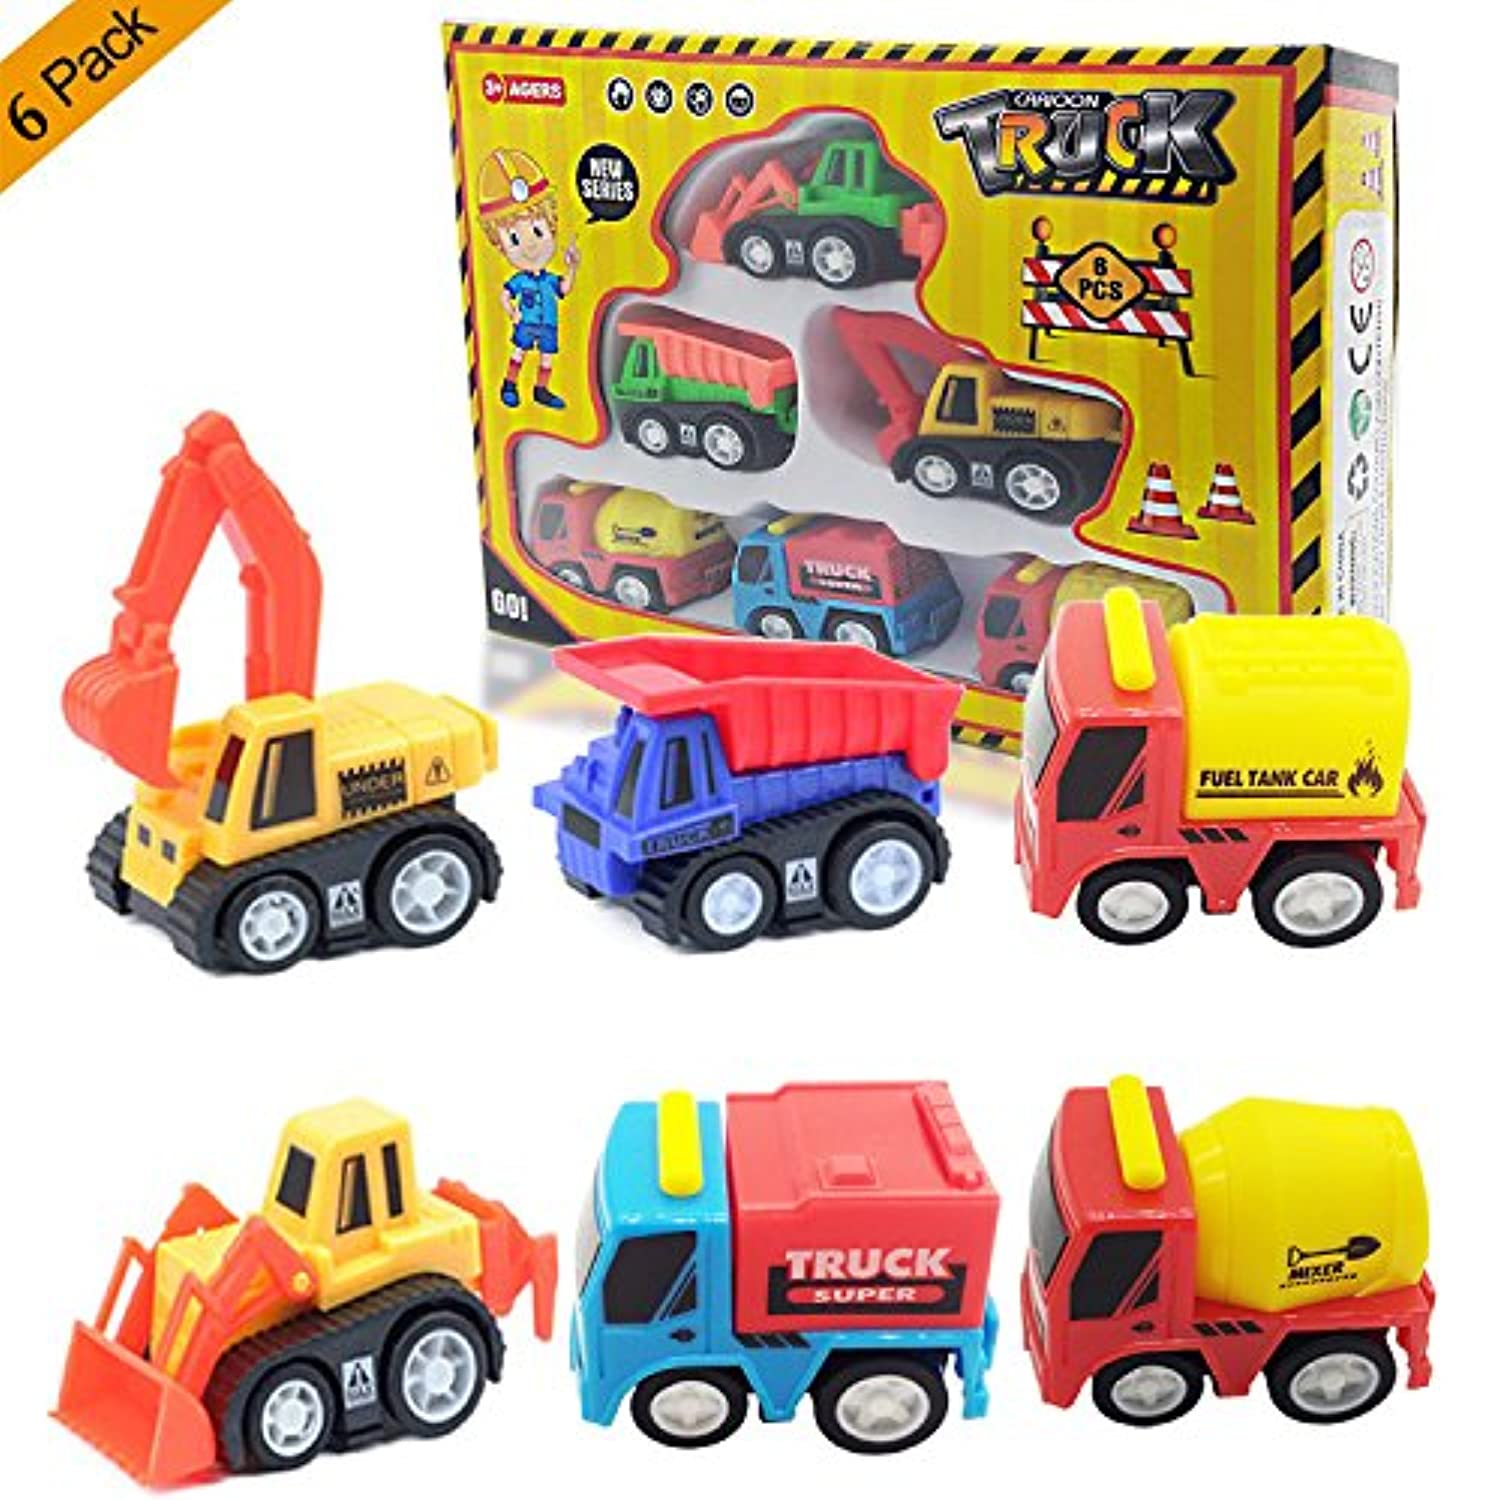 6-Pack Play Vehicles, Construction Excavator Dump Bulldozer Fuel Tank Car Truck Playset, Toy Gift Best Gifts for Kids & Toddlers & Boys